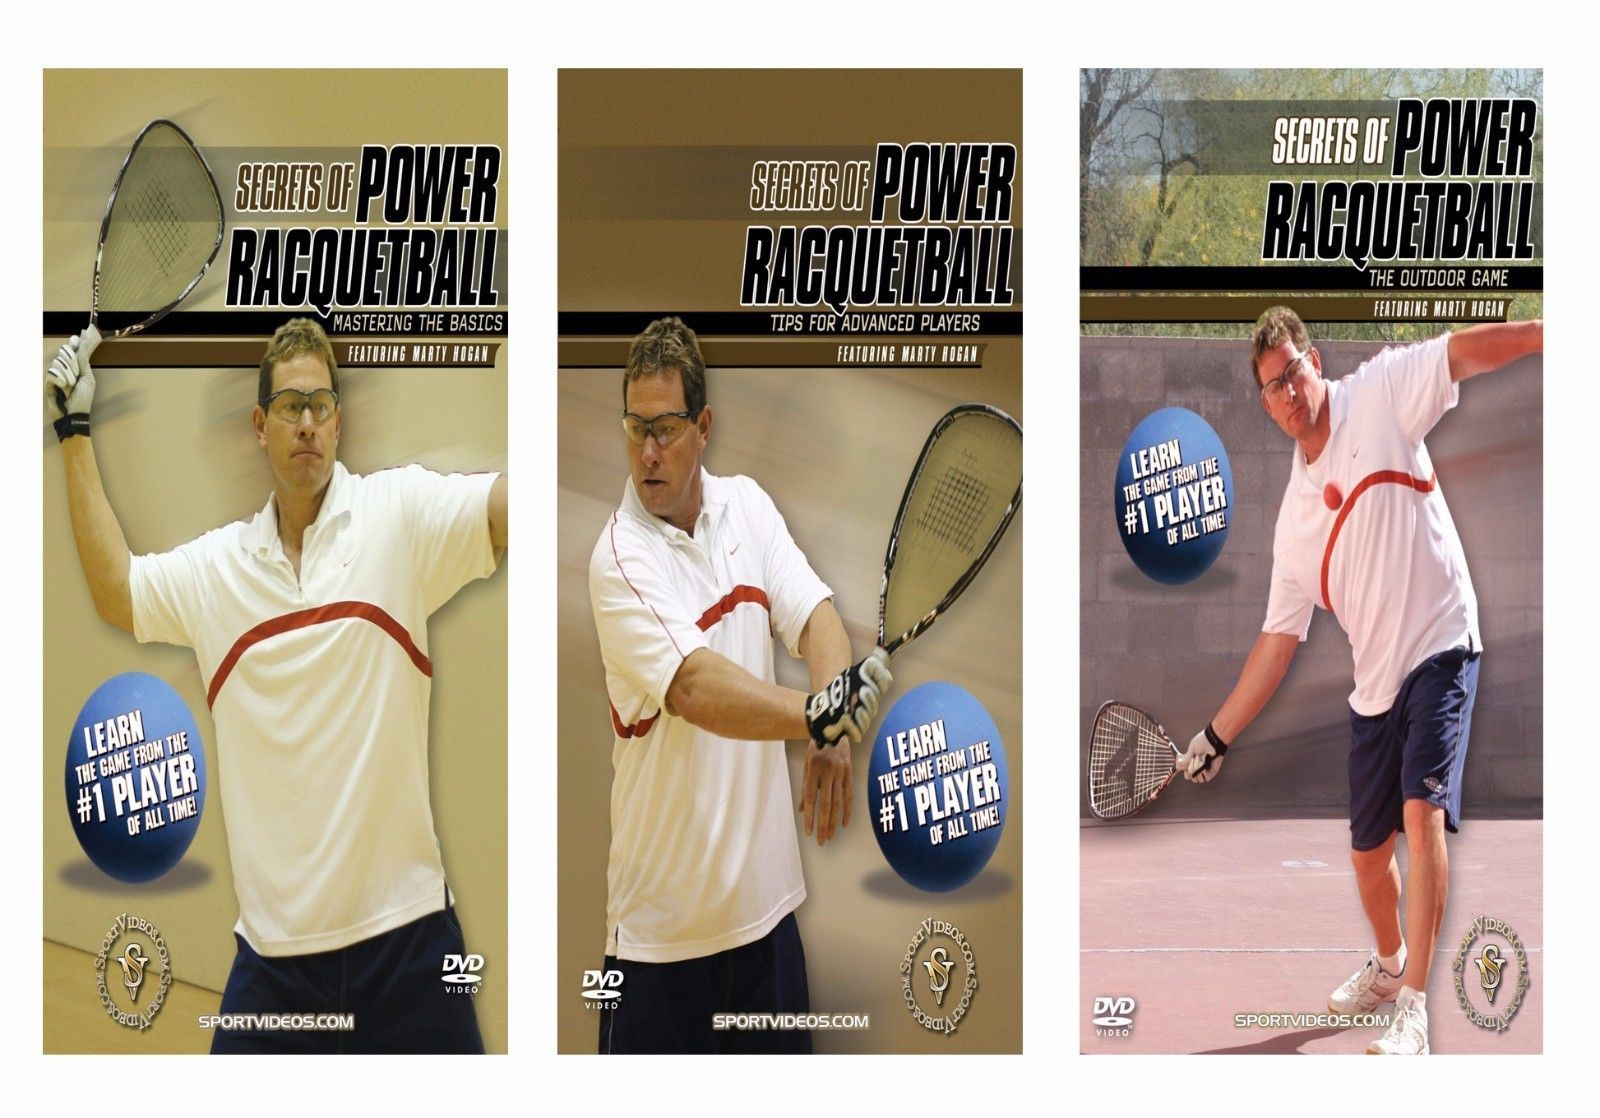 Secrets of Power Racquetball 3 DVD Set featuring Marty